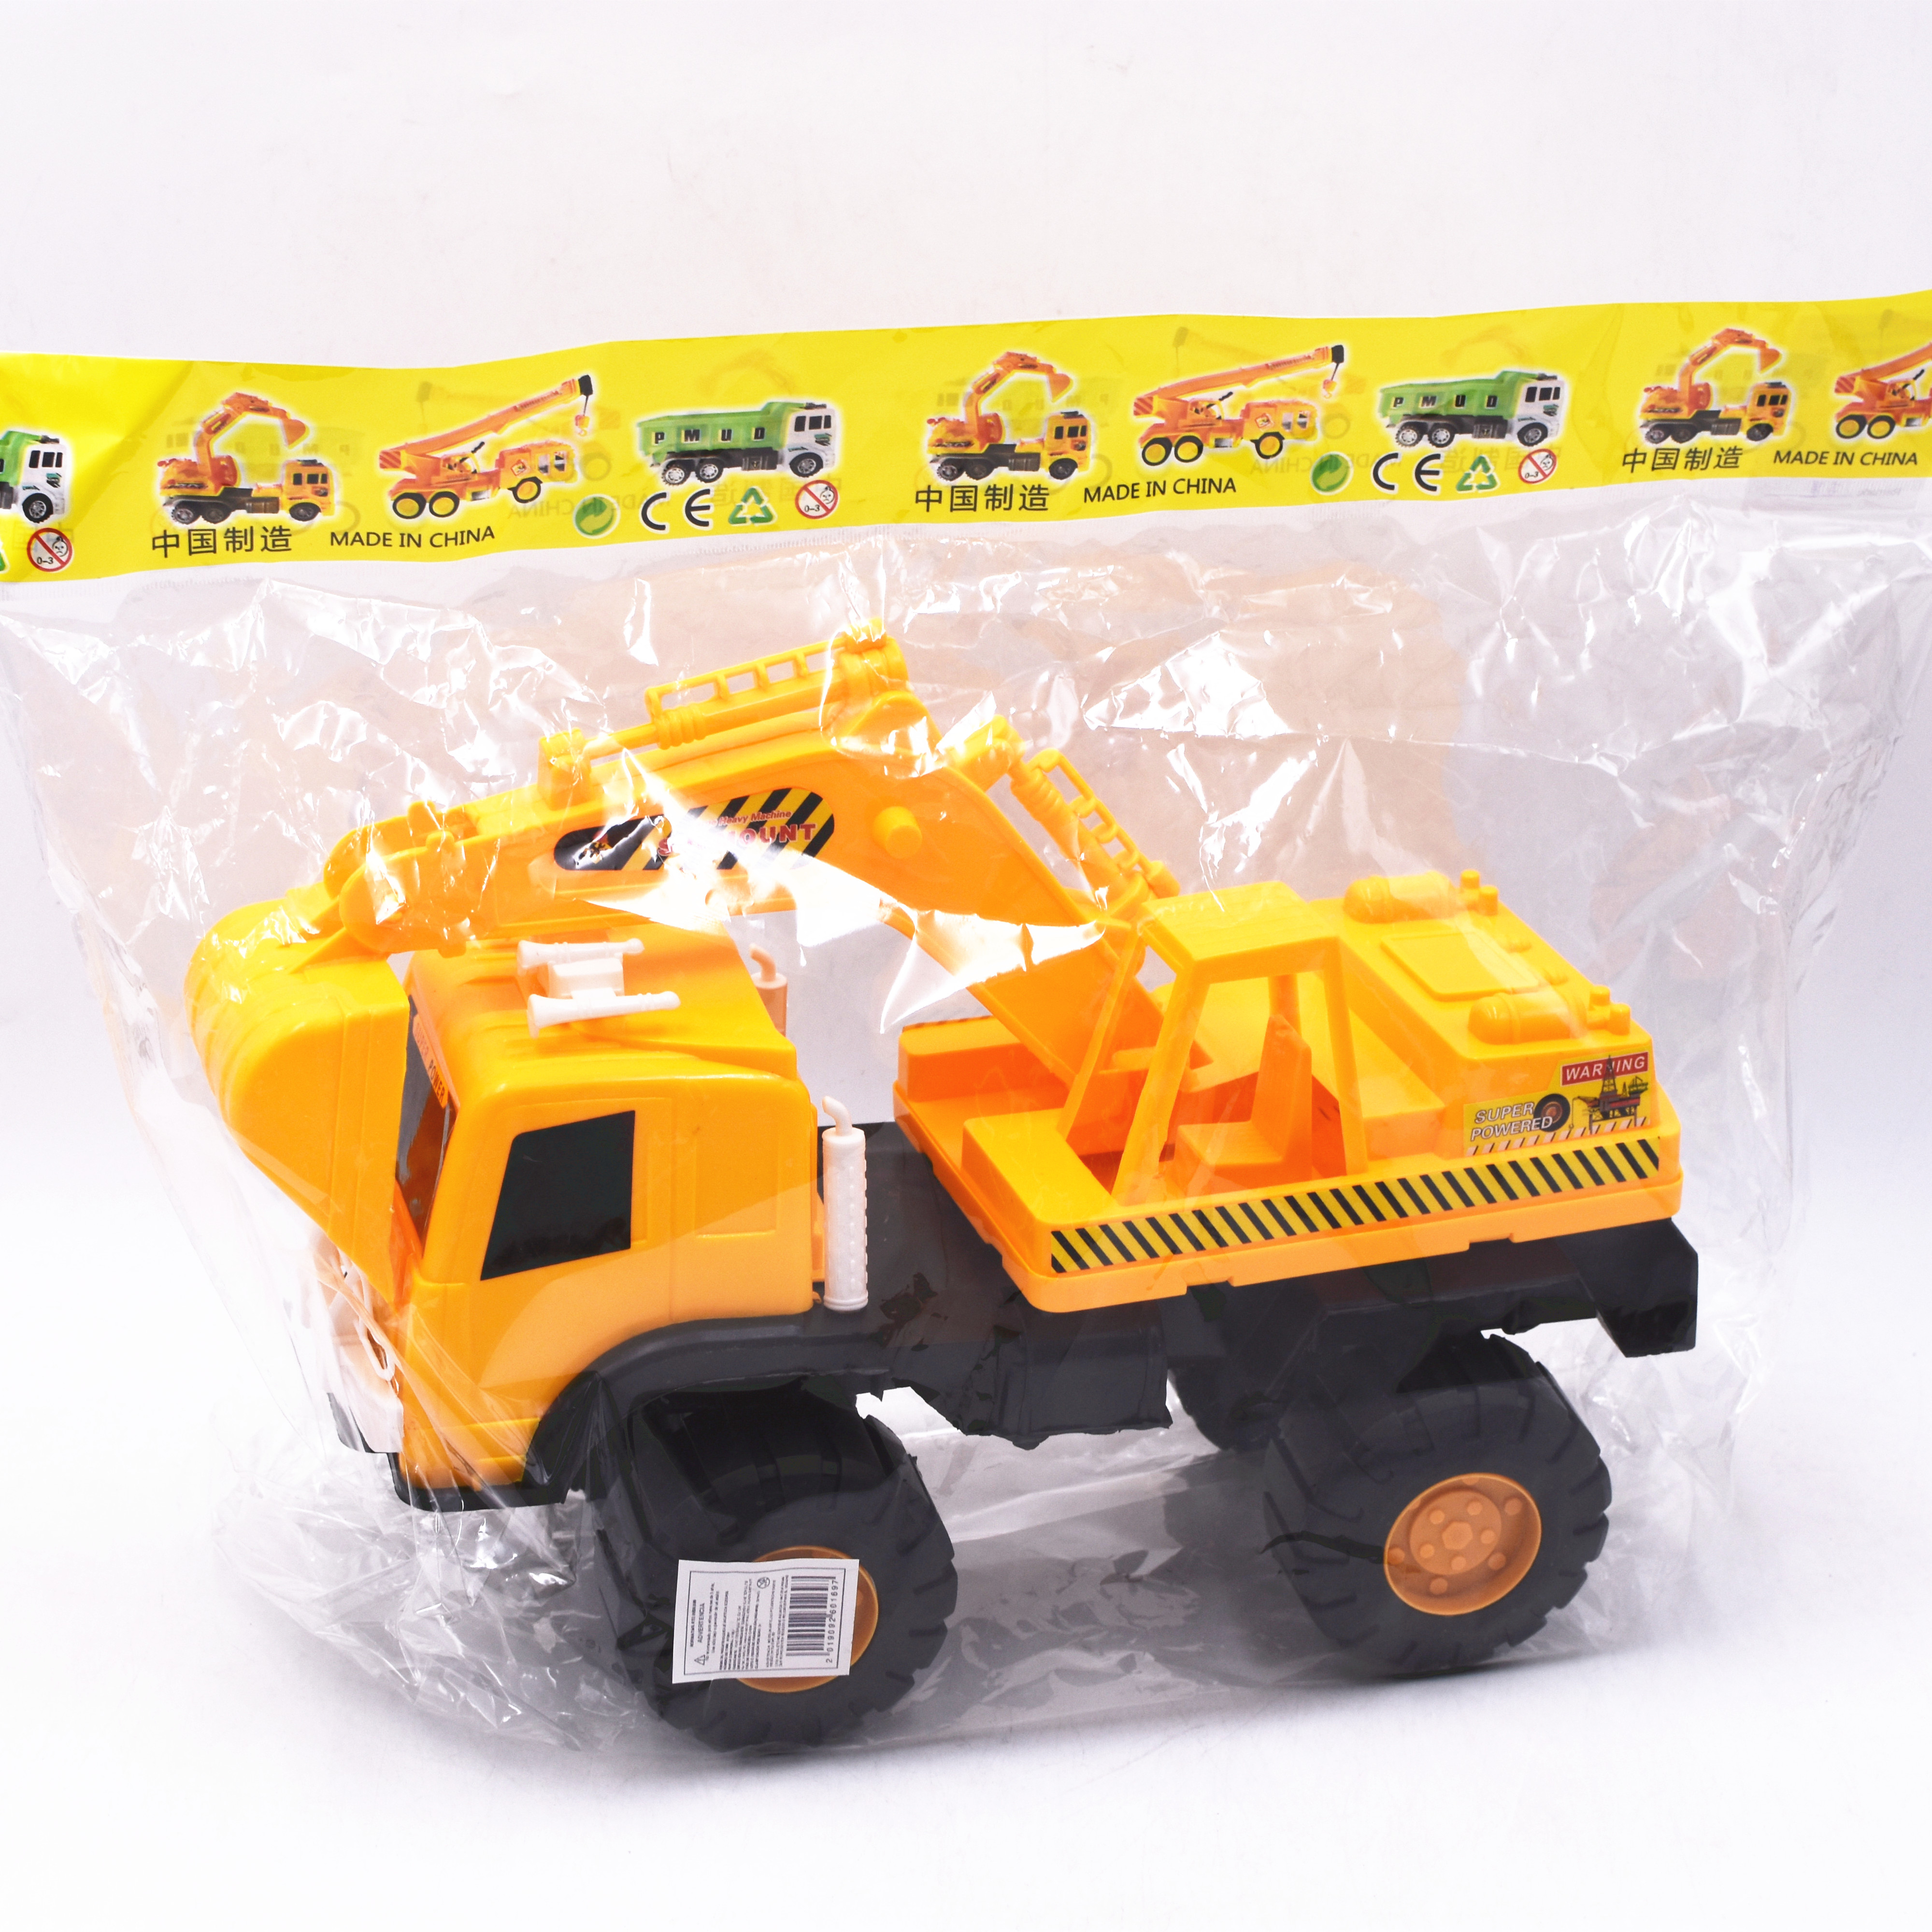 FREE WHEEL TRUCK TOY LY1727